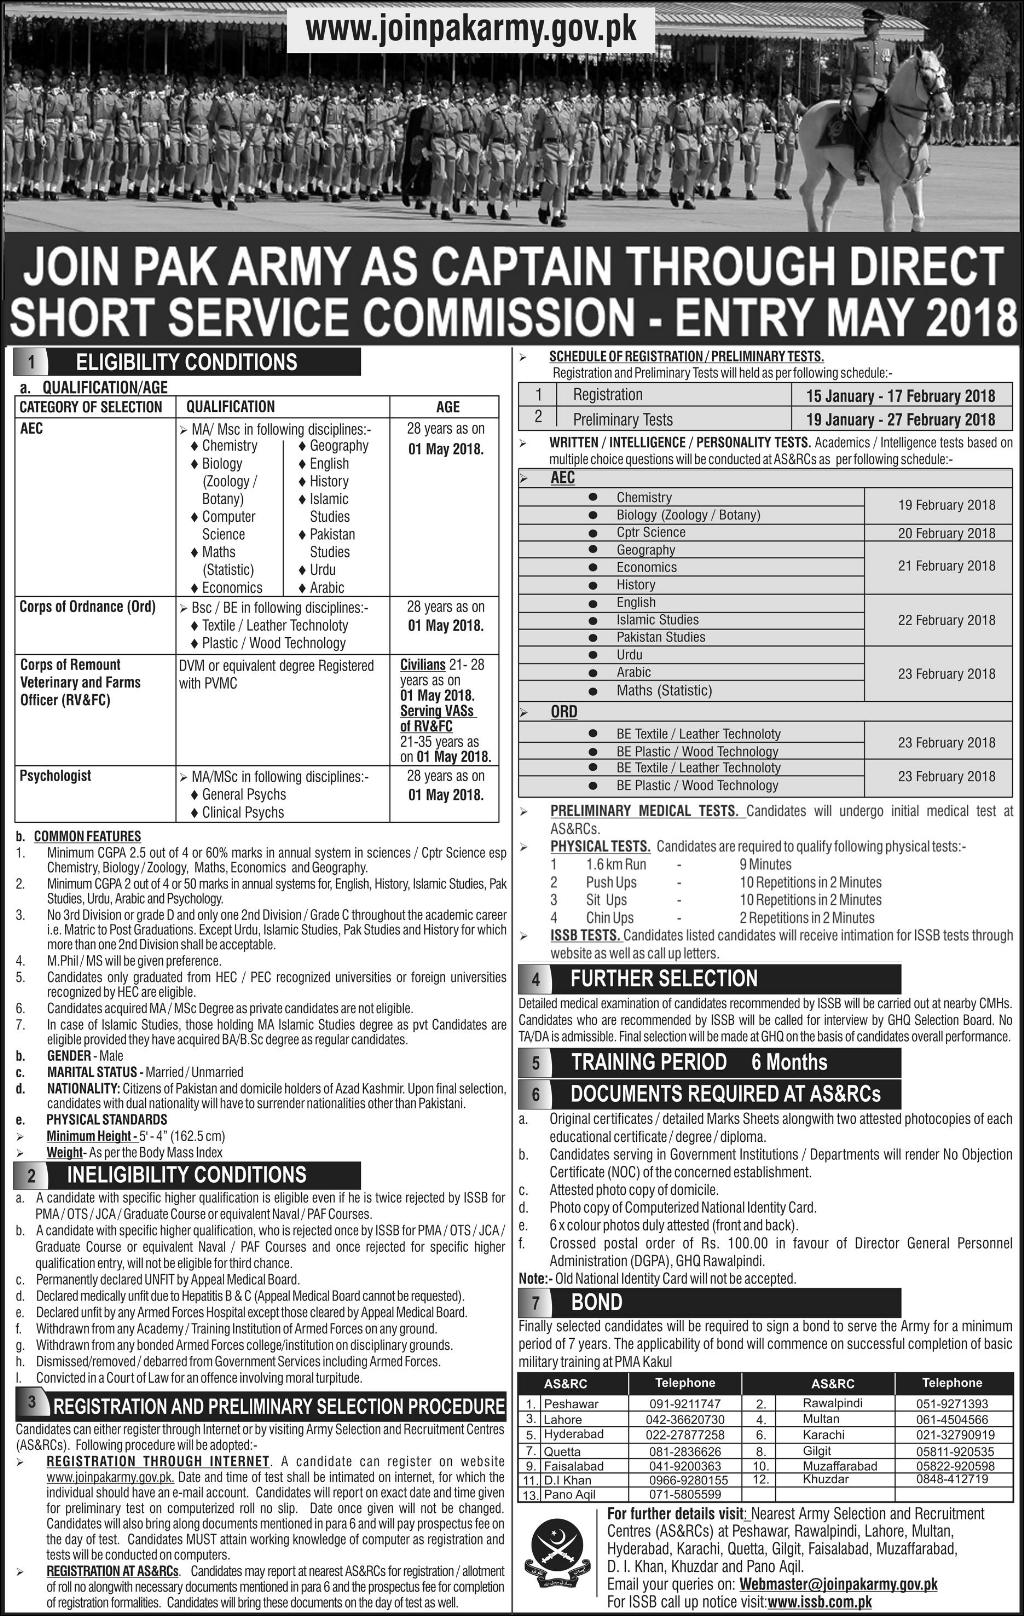 Join Pakistan Army as Captain Entry 2018 by Short Service Commission